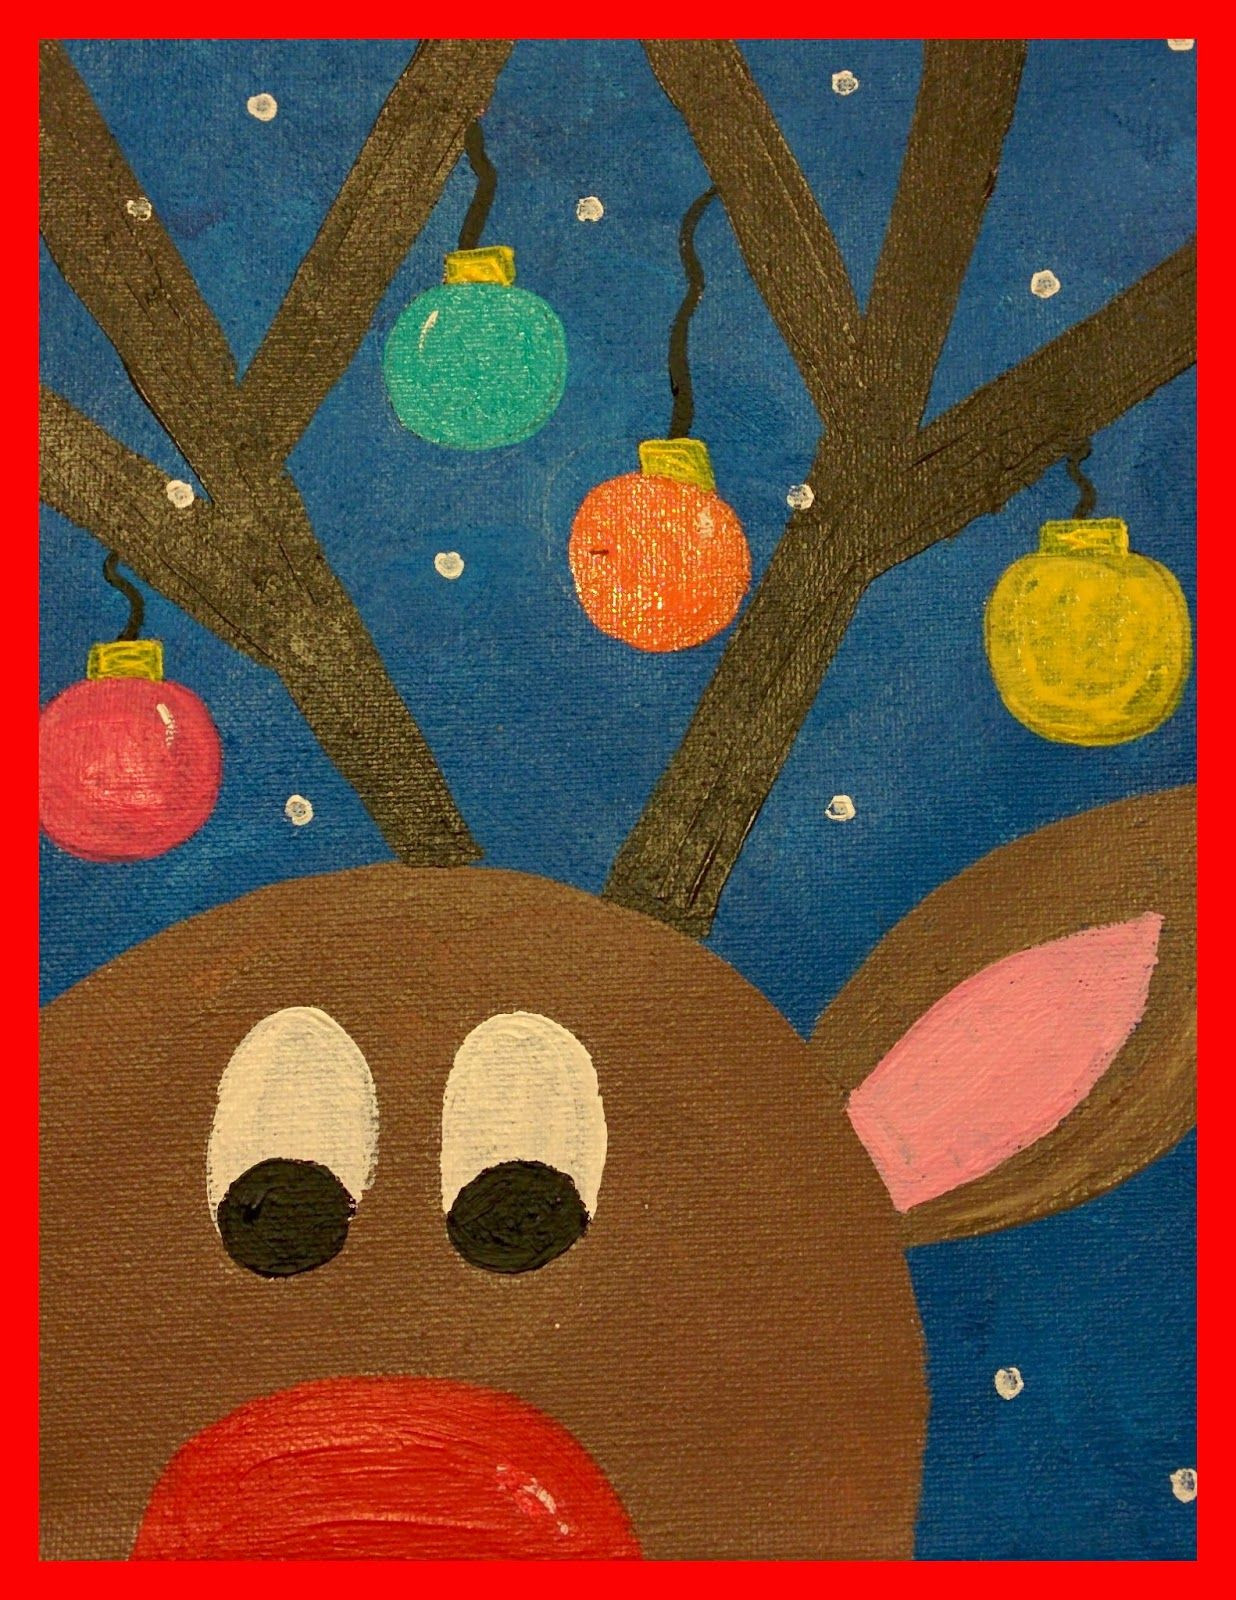 Christmas Painting Ideas For Kids  Guided Art Reindeer on Canvas